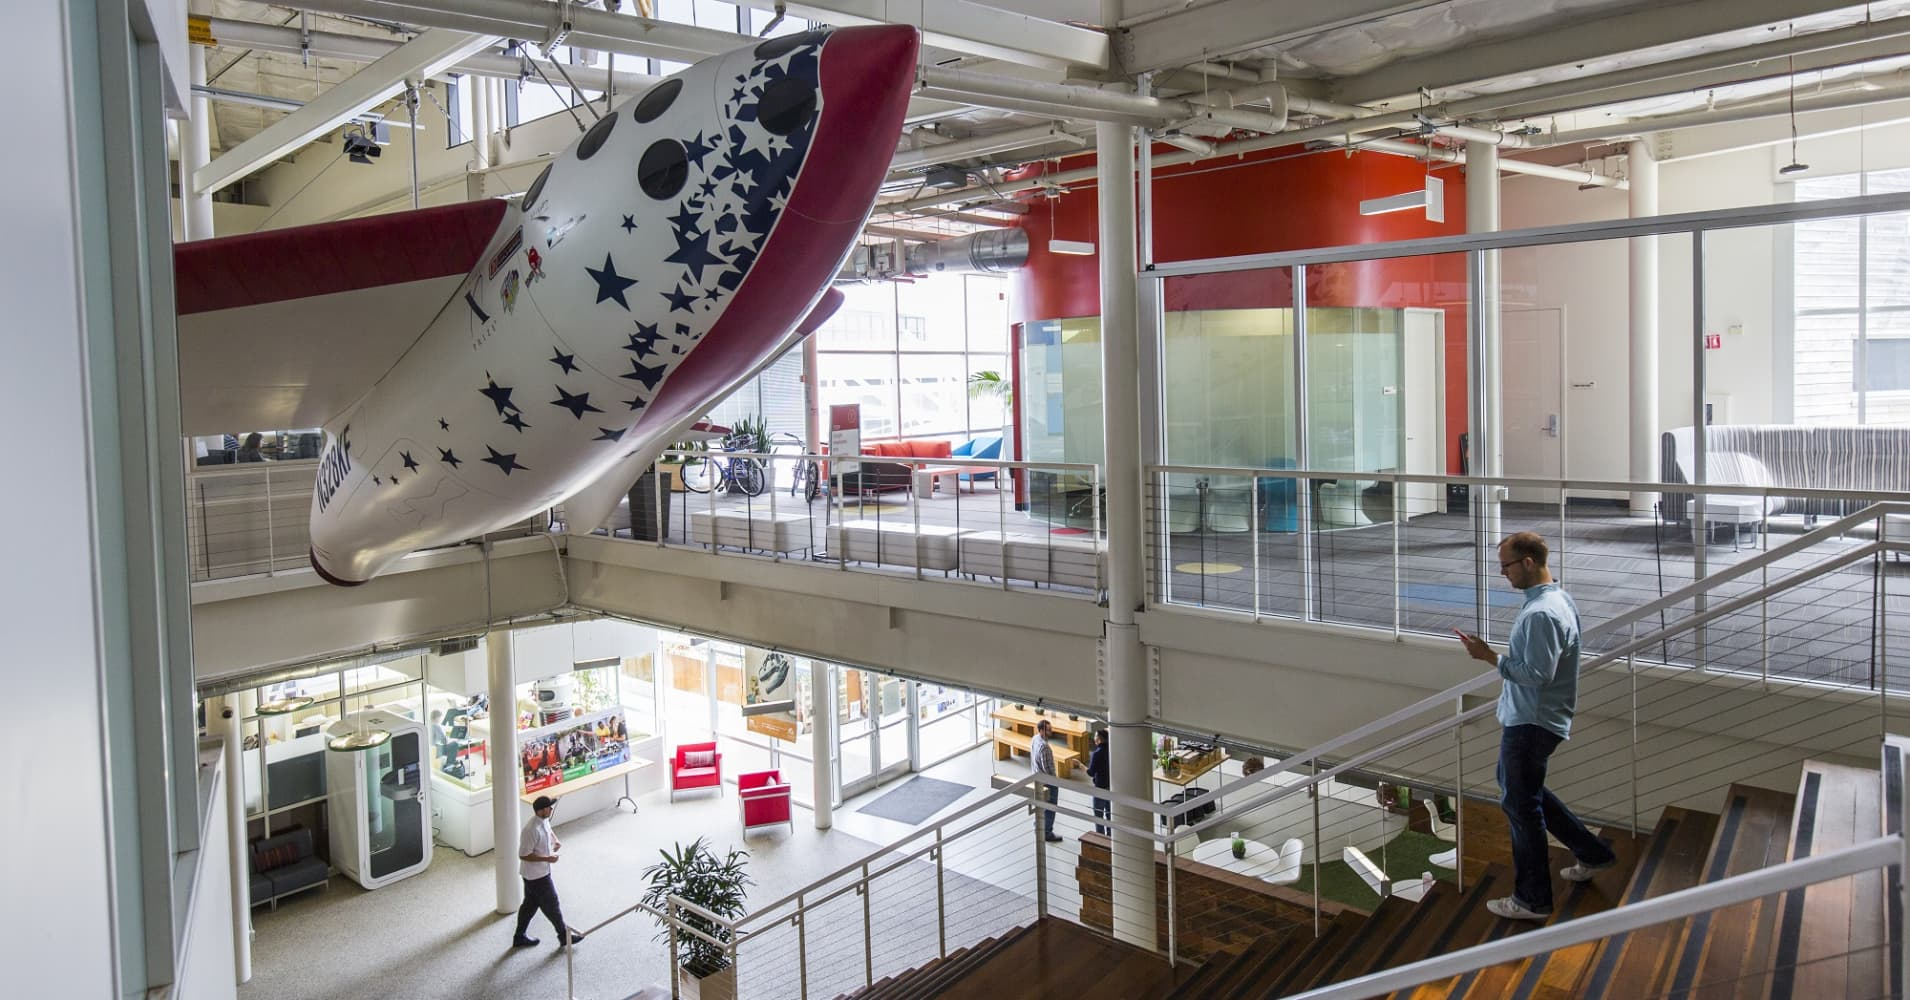 An interior view of office space at the Googleplex, the corporate headquarters complex of Google, Inc.